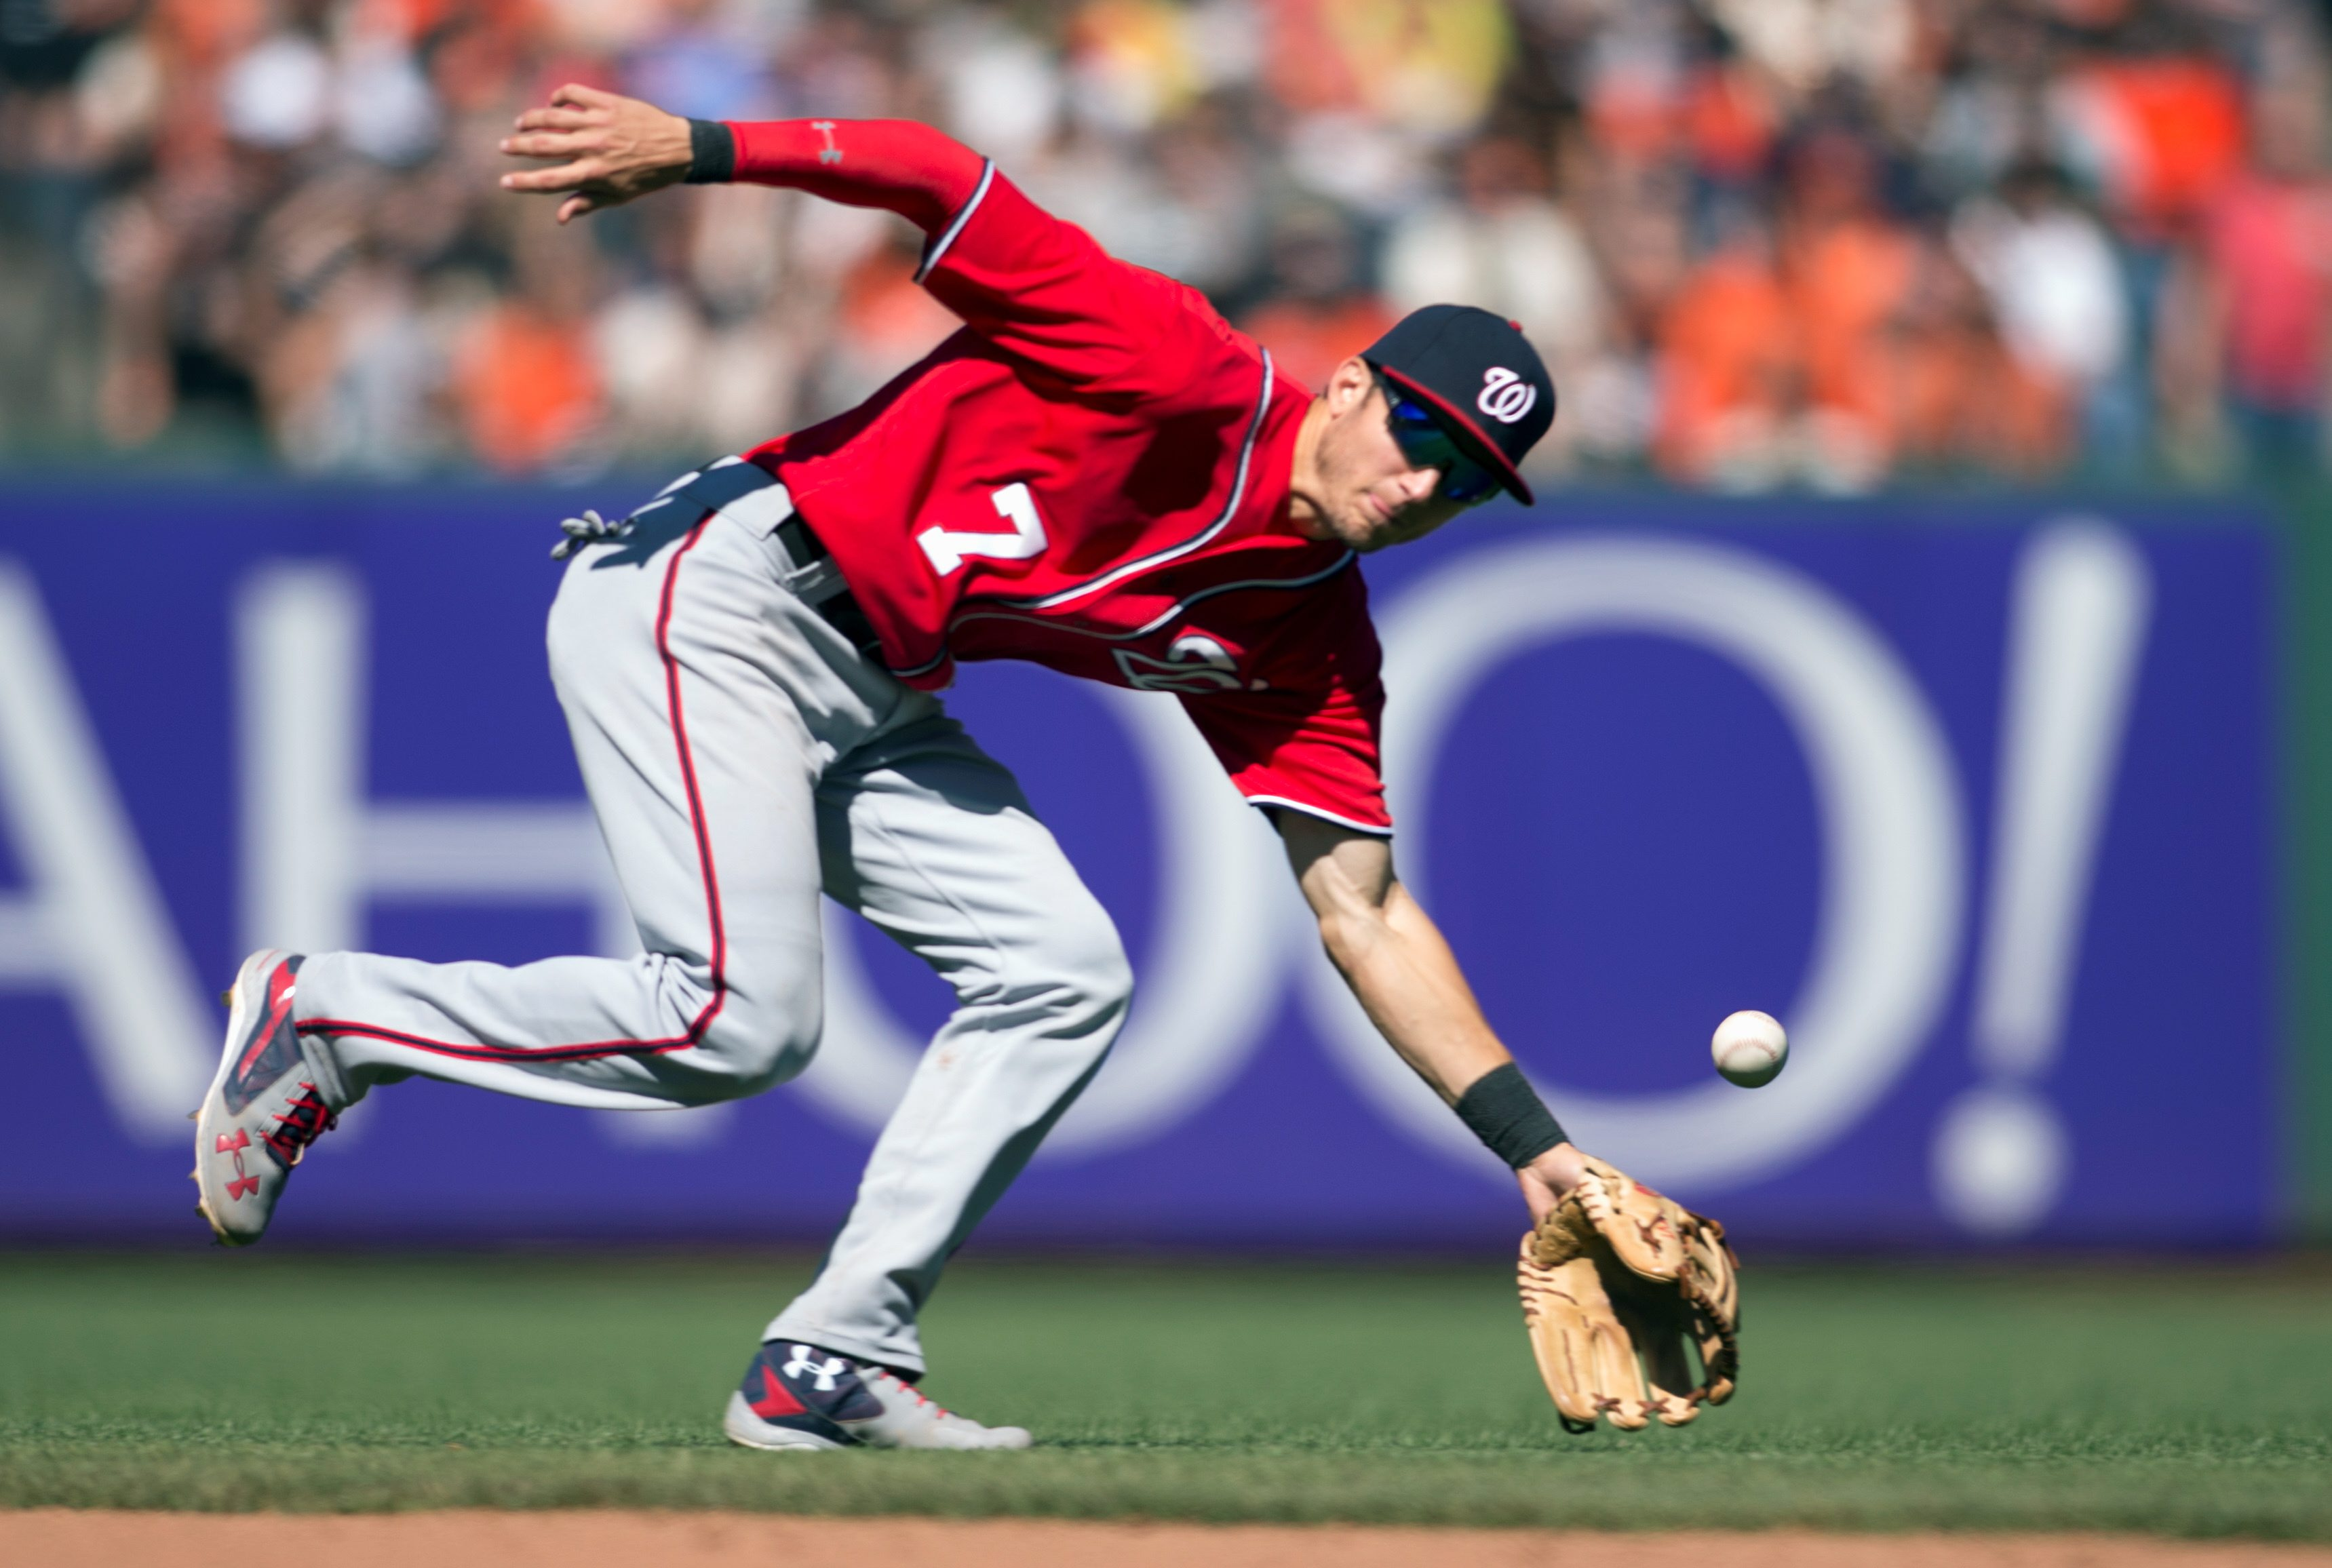 8_9_2016_nationals-giants-basebal-158201